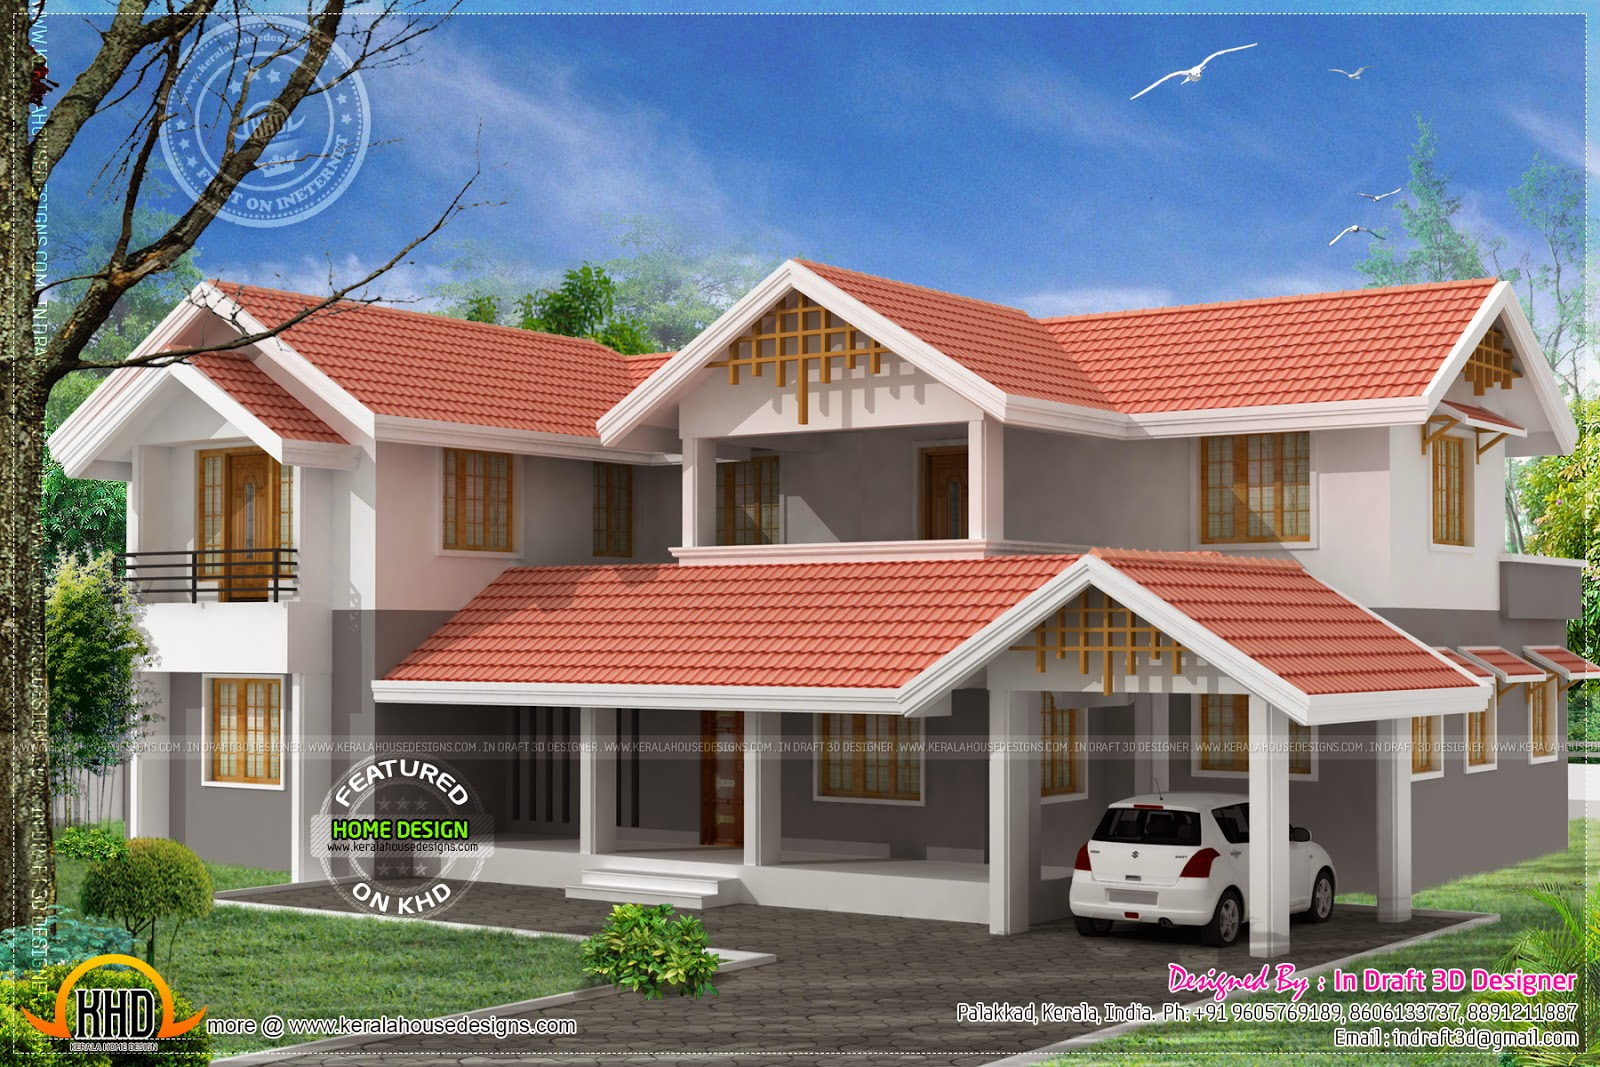 3d Home Design In 2860 Sq Feet Kerala Home Design And Floor Plans 8000 Houses